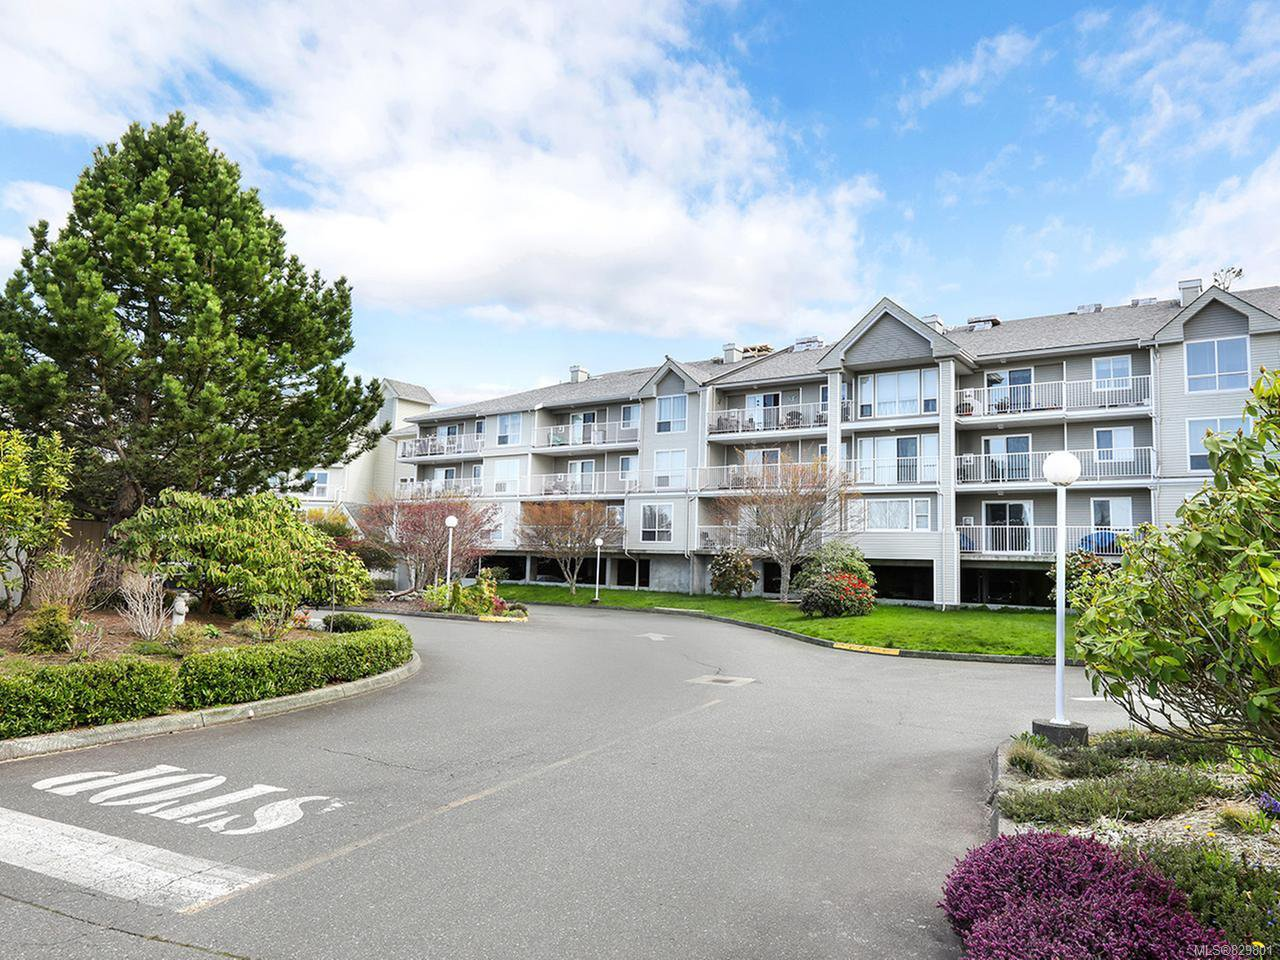 Photo 4: Photos: 311 155 Erickson Rd in CAMPBELL RIVER: CR Willow Point Condo for sale (Campbell River)  : MLS®# 829801